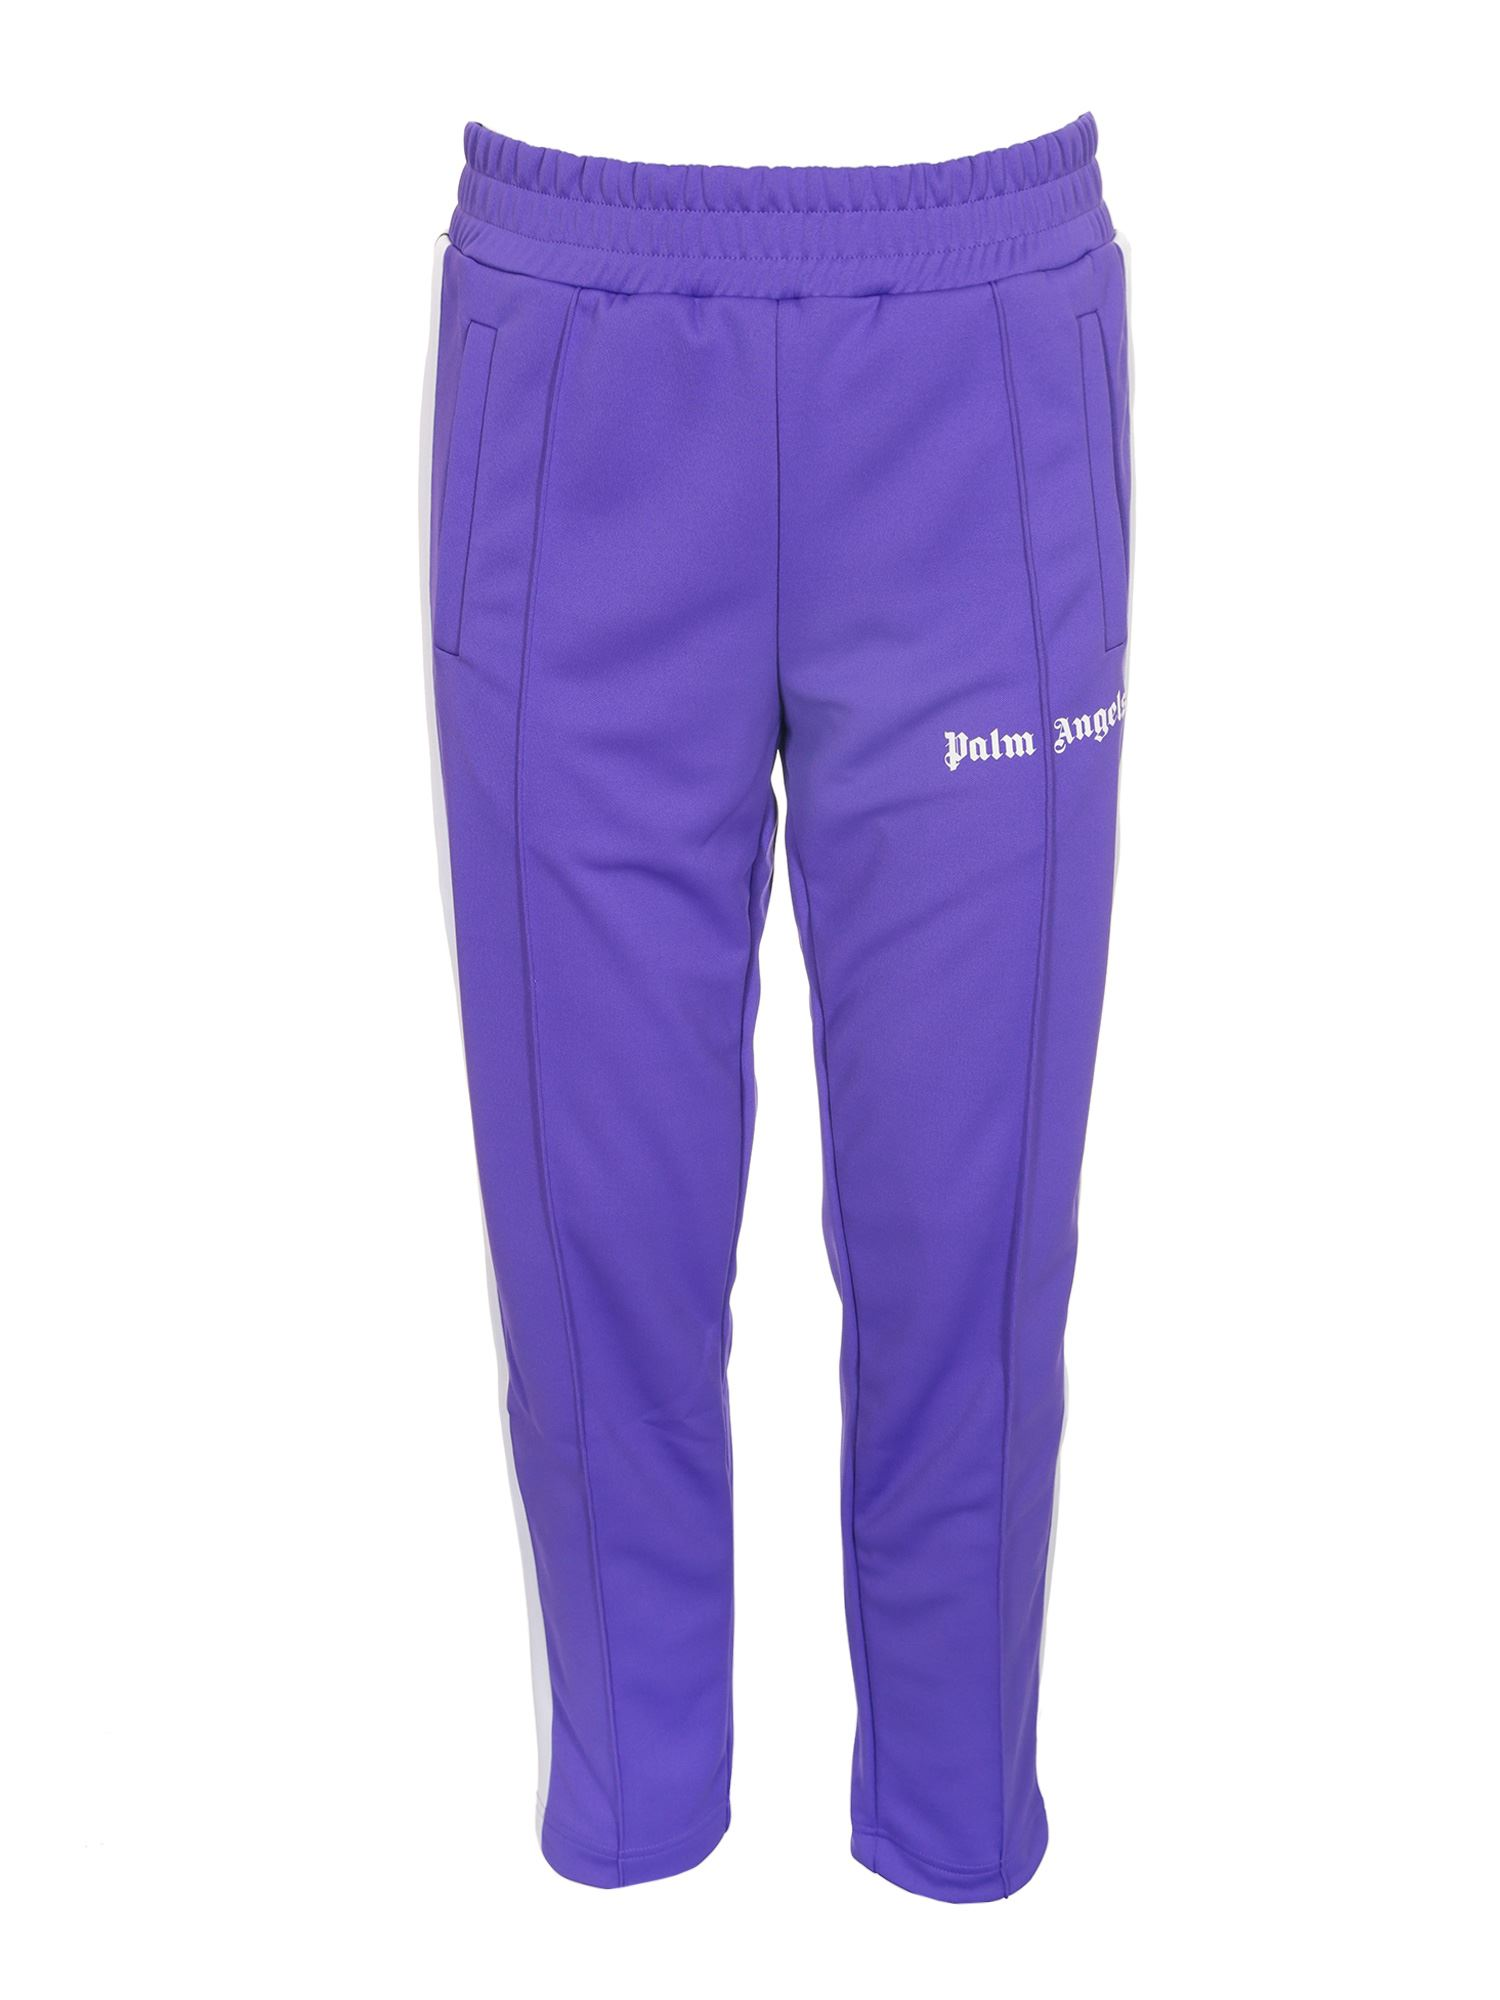 Palm Angels CLASSIC SLIM TRACK PANT IN PURPLE